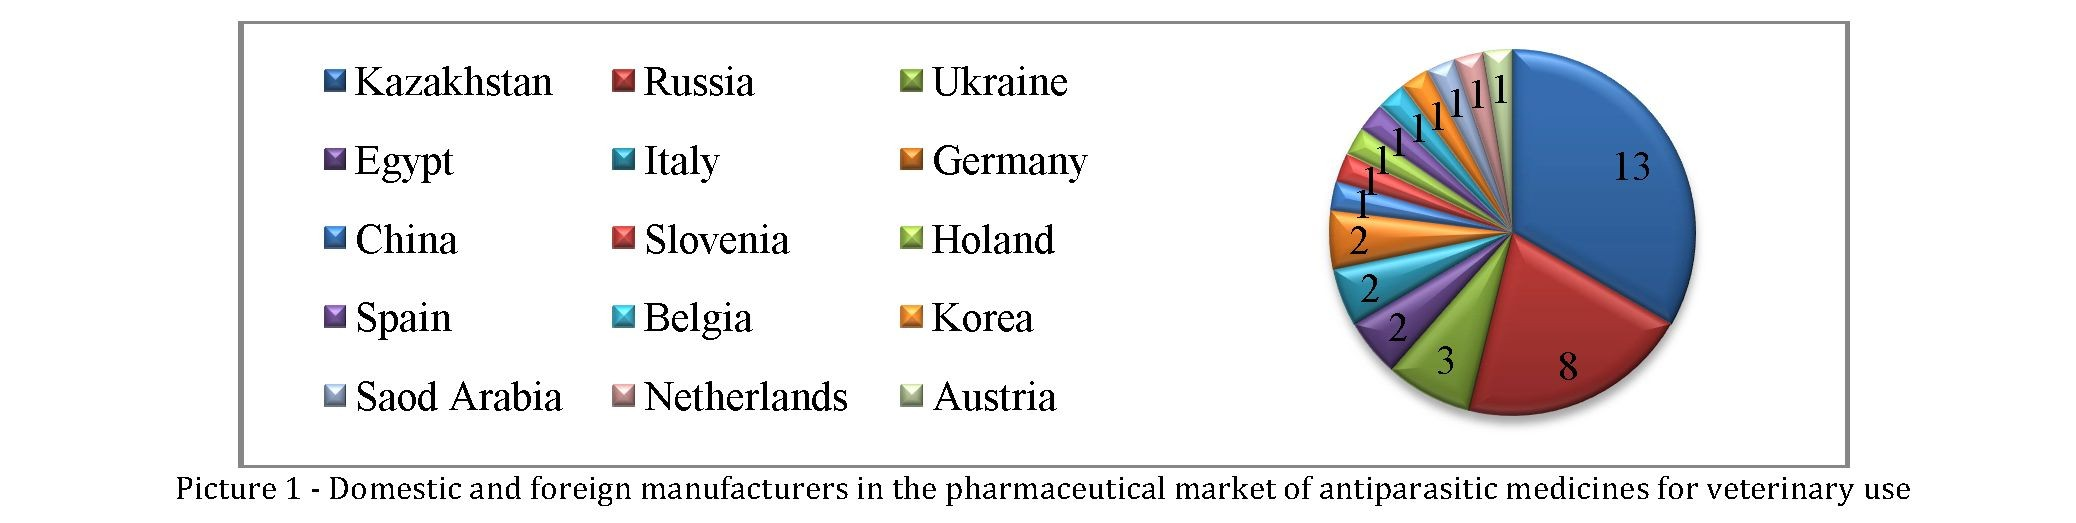 Marketing researches of pharmaceutical market in kazakhstan of antiparasitic medicines in veterinary